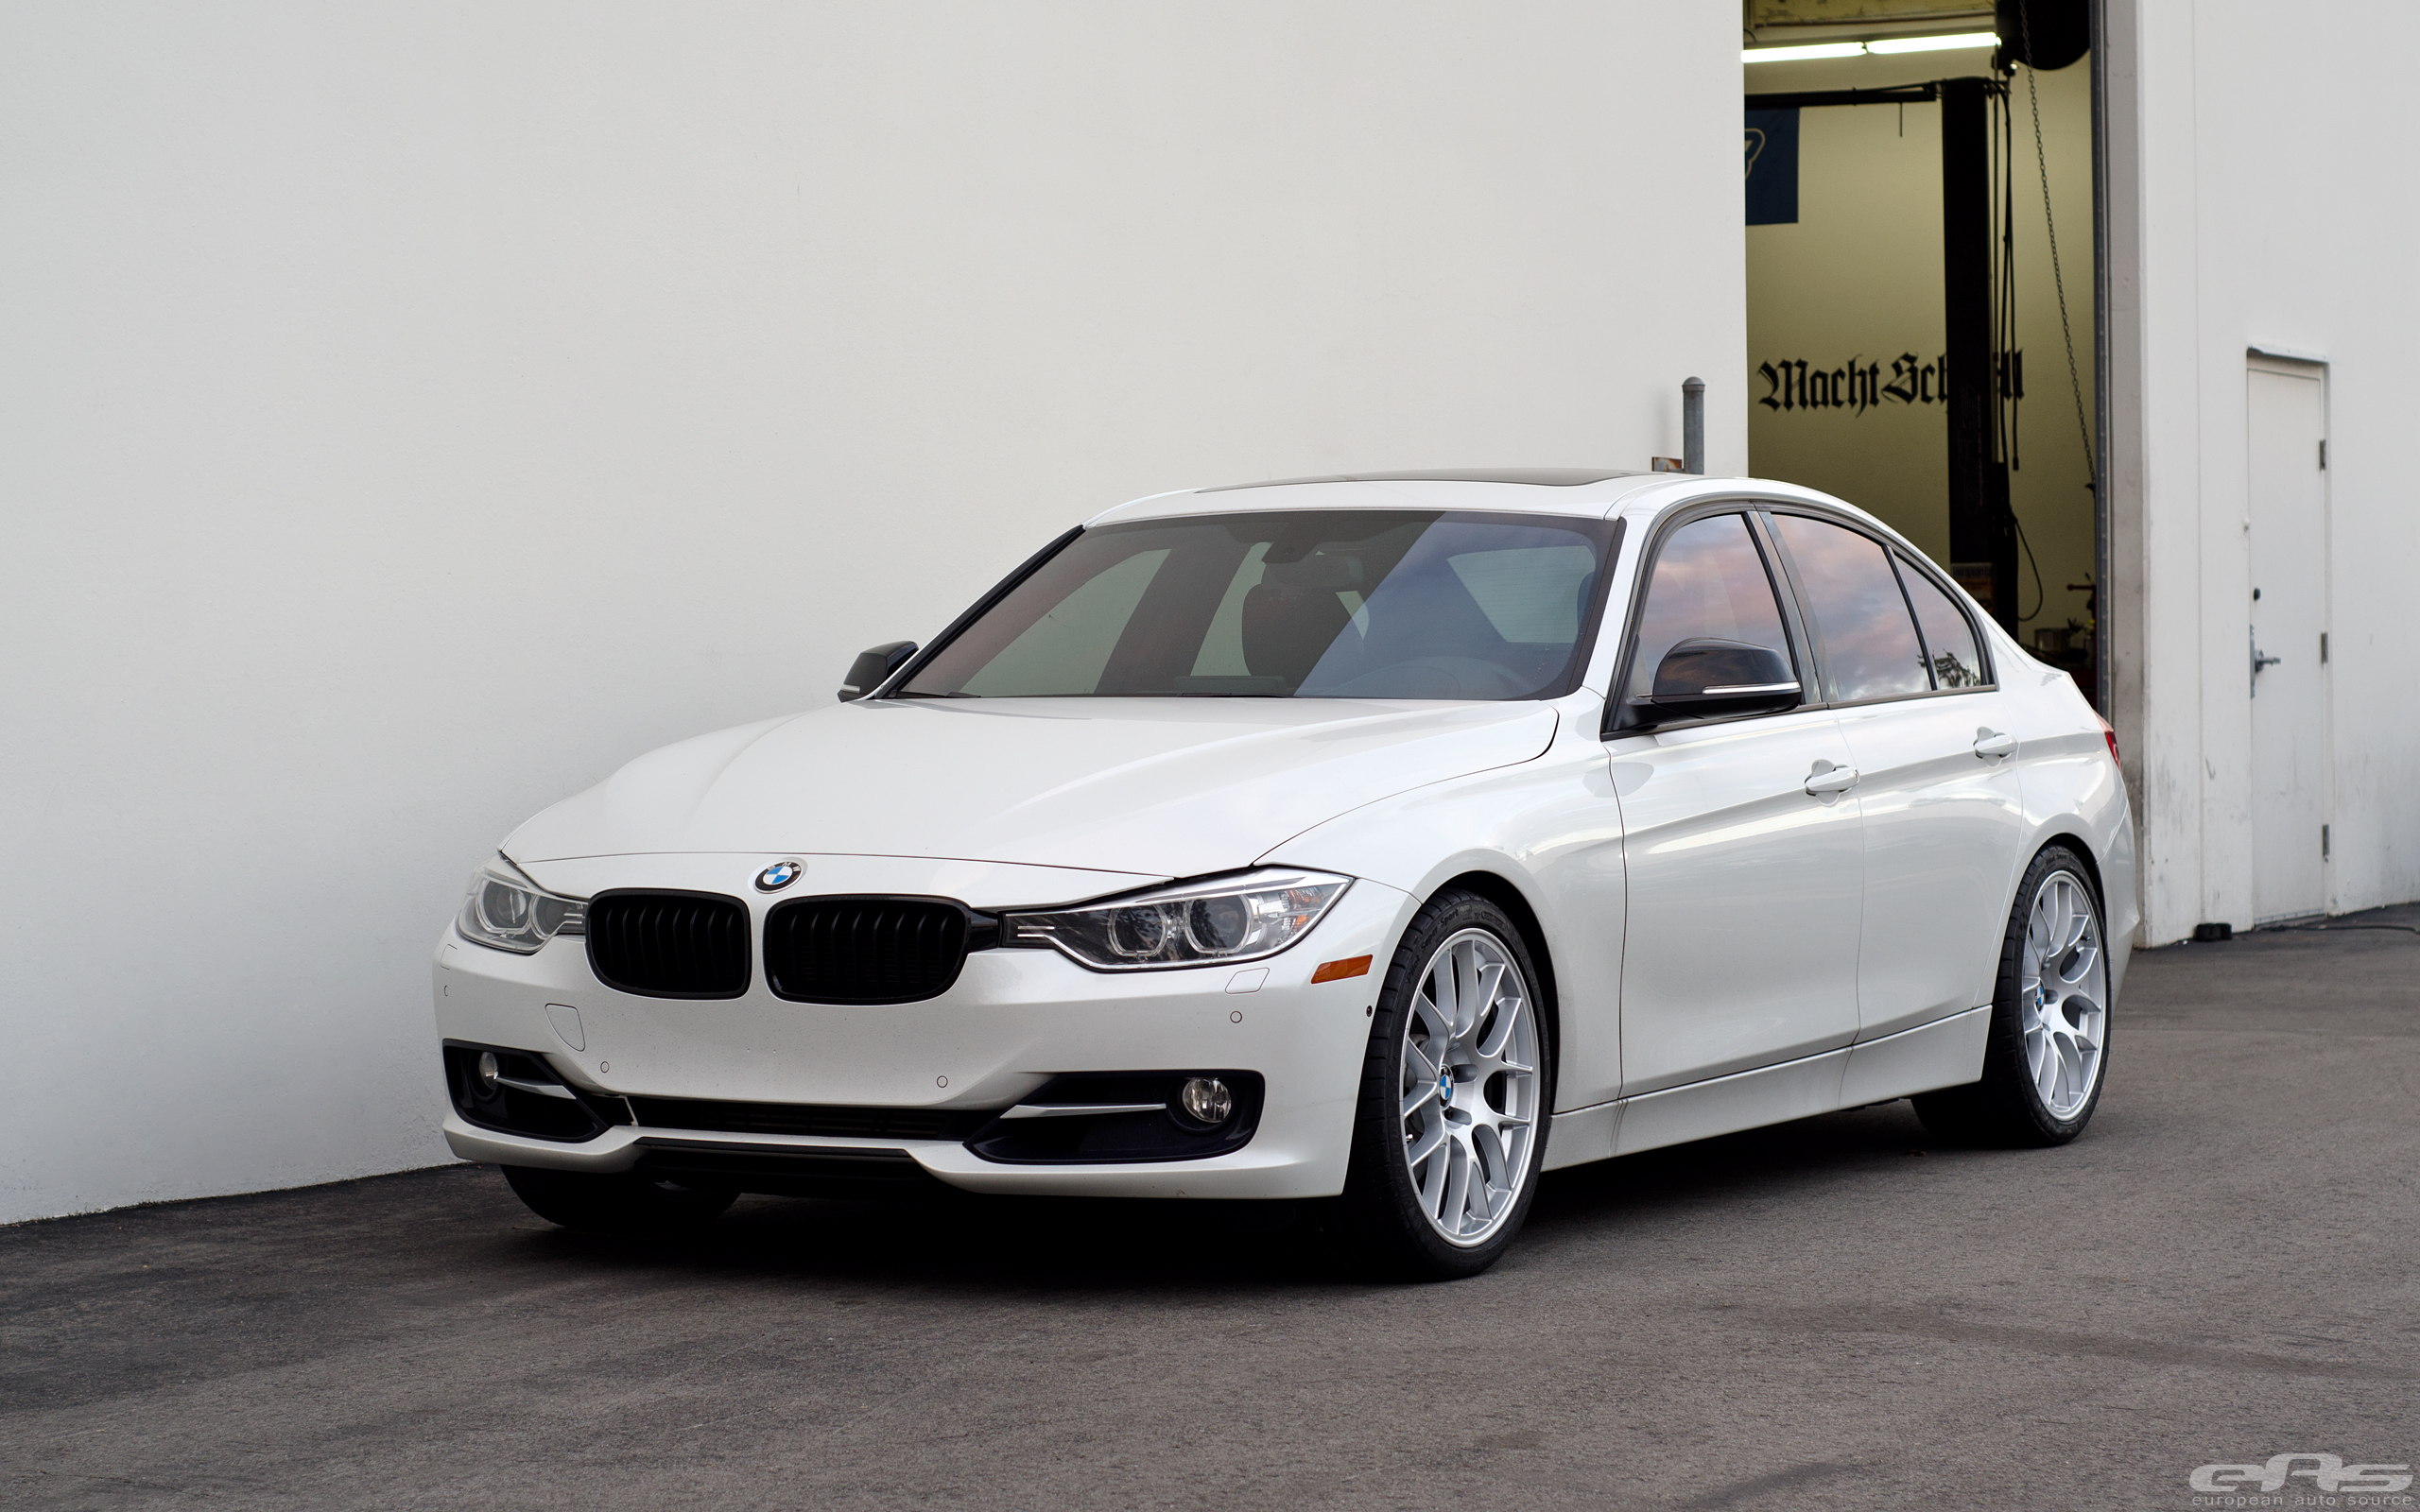 Car Source: APEX EC-7 Wheels Installed On A Mineral White F30